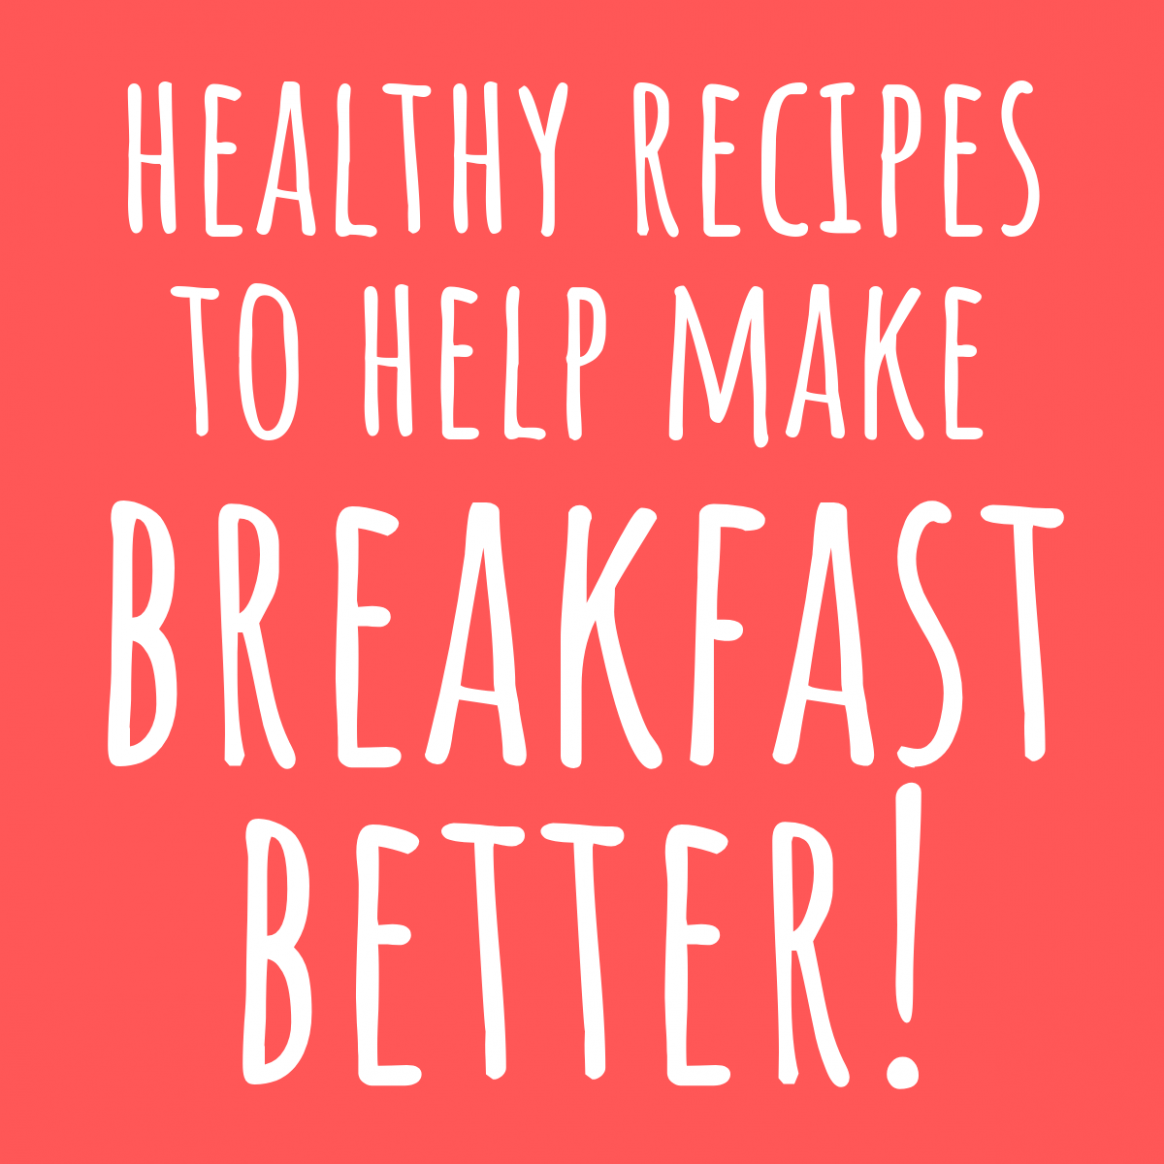 Healthy Recipes To Have A Better Breakfast! - KidzShake - Healthy Recipes To Make